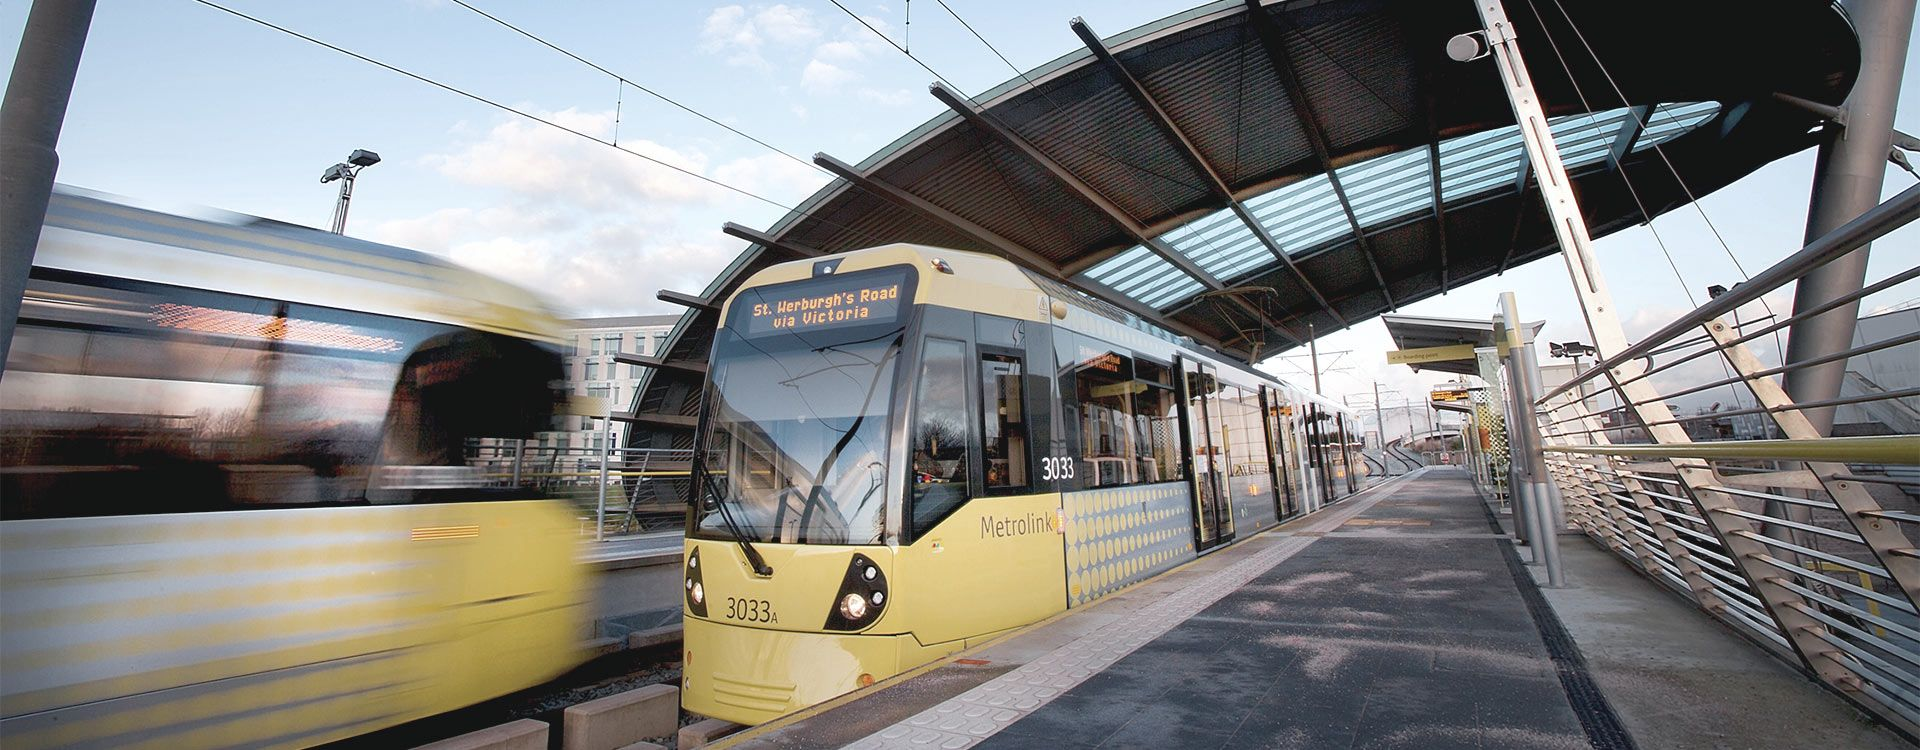 bnr-Manchester-Metrolink-Strategic-Consulting